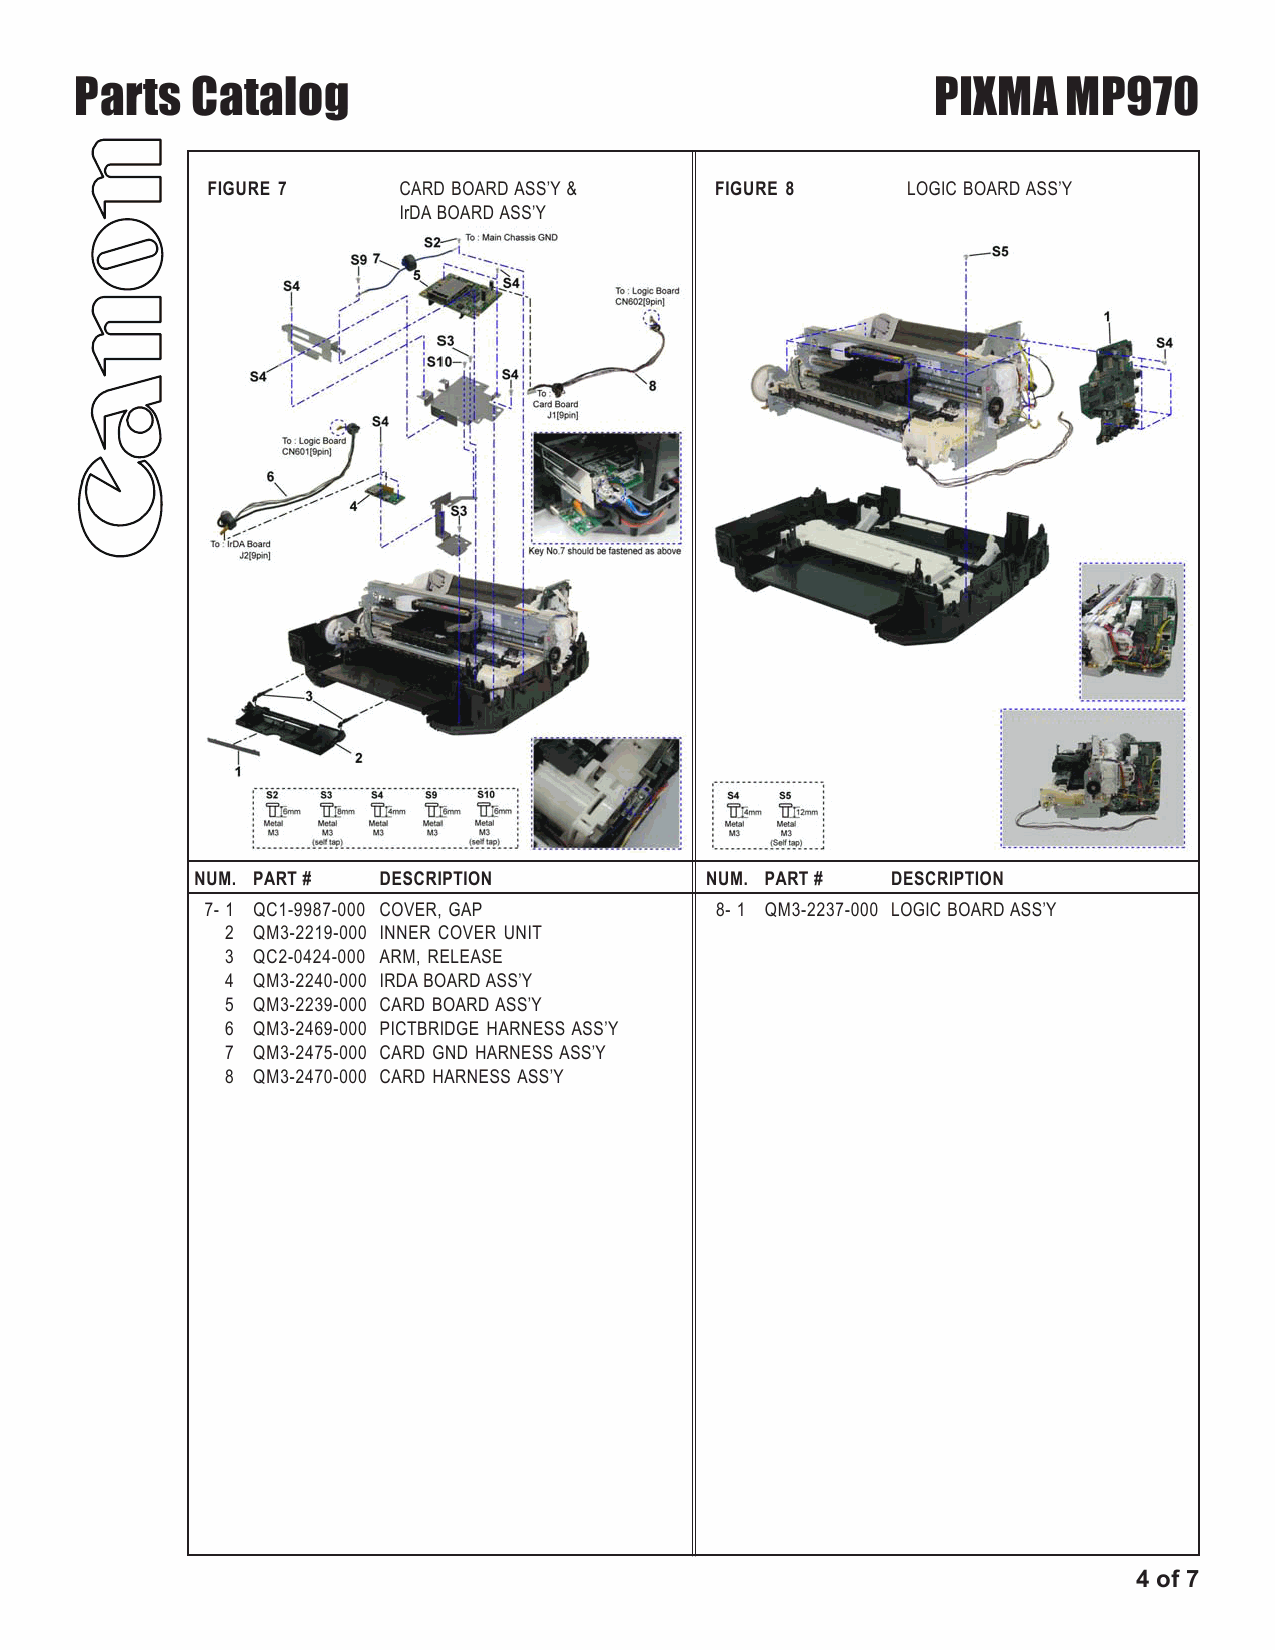 Canon PIXMA MP970 Parts and Service Manual-6